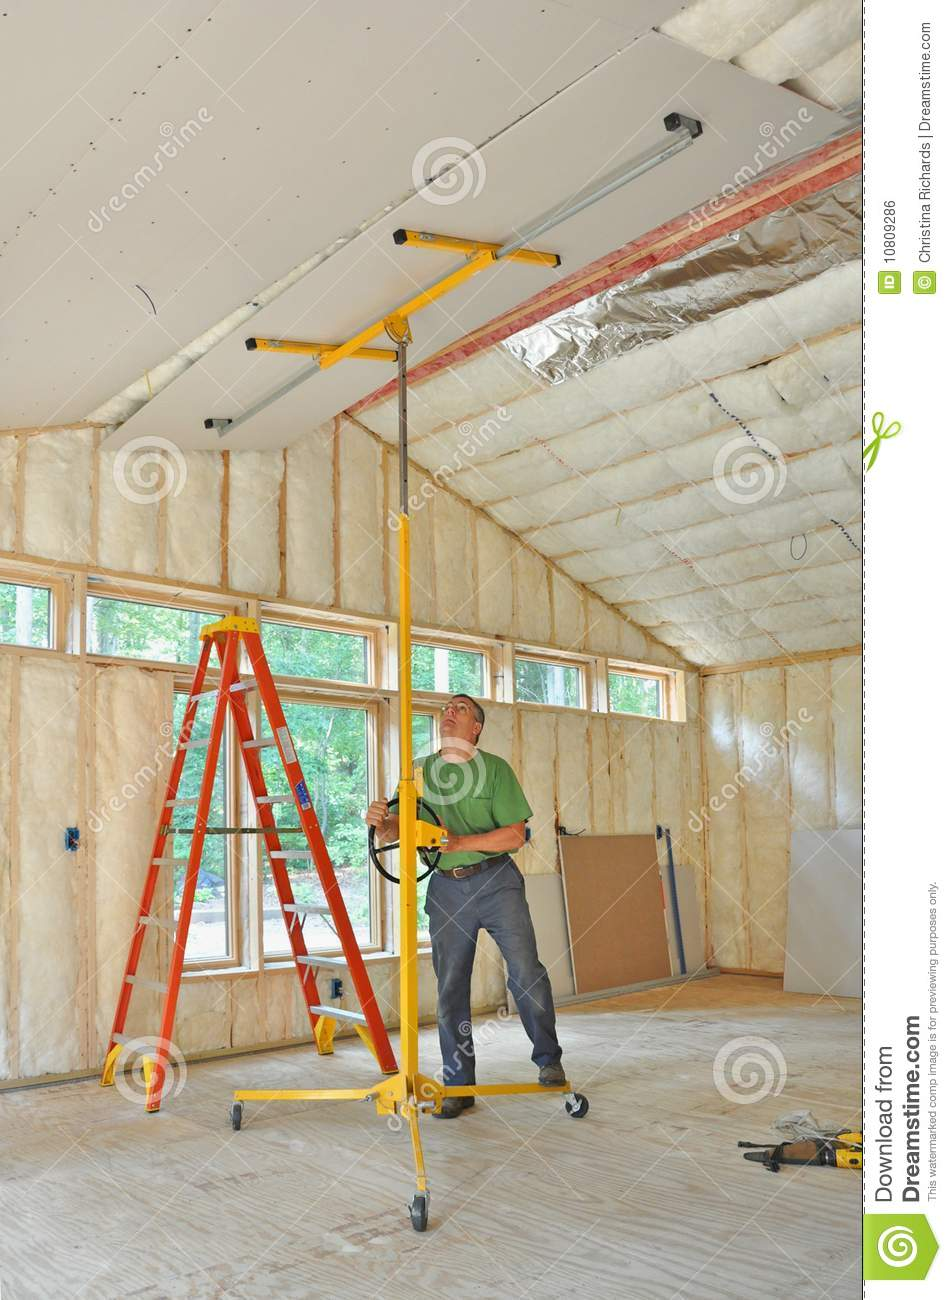 How to hang drywall on walls - Man Installing Drywall On Ceiling